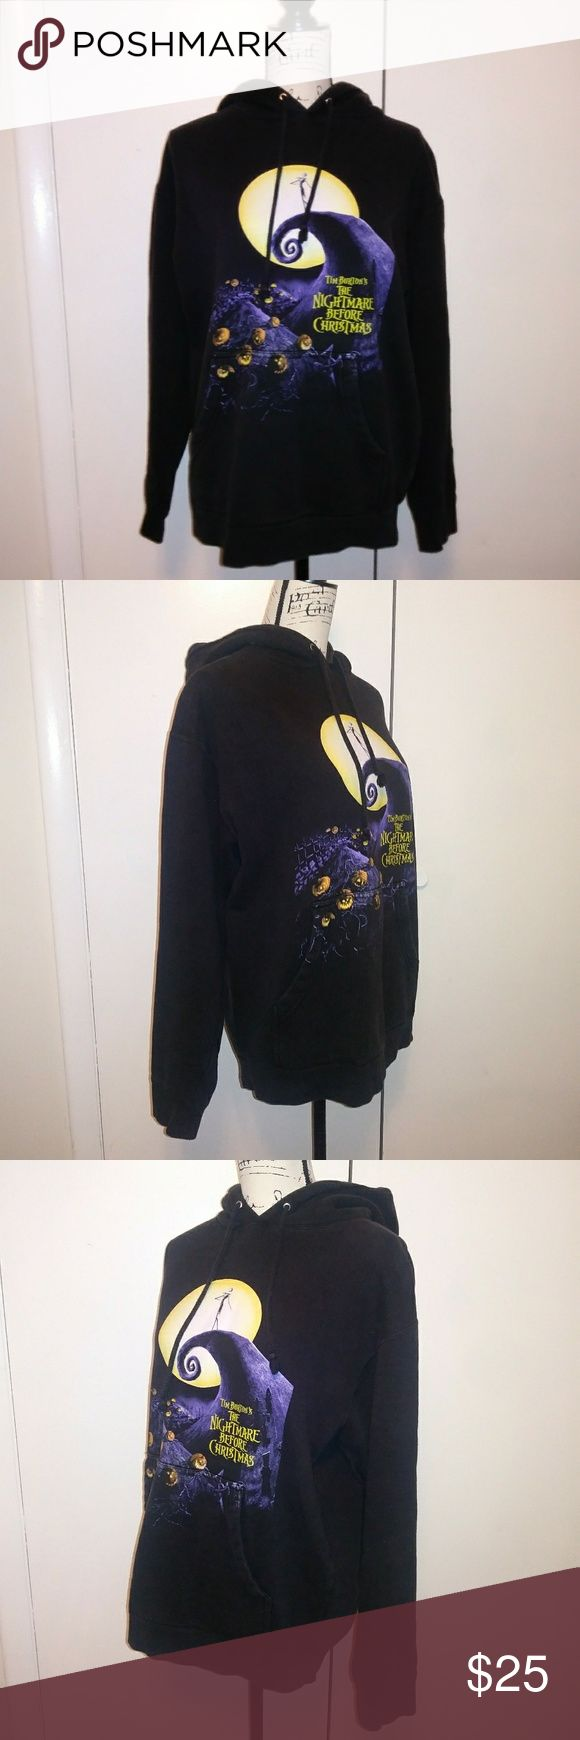 The Nightmare Before Christmas Sweatshirt Hoodie Tim Burton's The Nightmare Before Christmas Hoodie - Size: Medium; fits a Large or XL for women - Front Pockets  Measurements shown in the pictures The Nightmare Before Christmas Shirts Sweatshirts & Hoodies